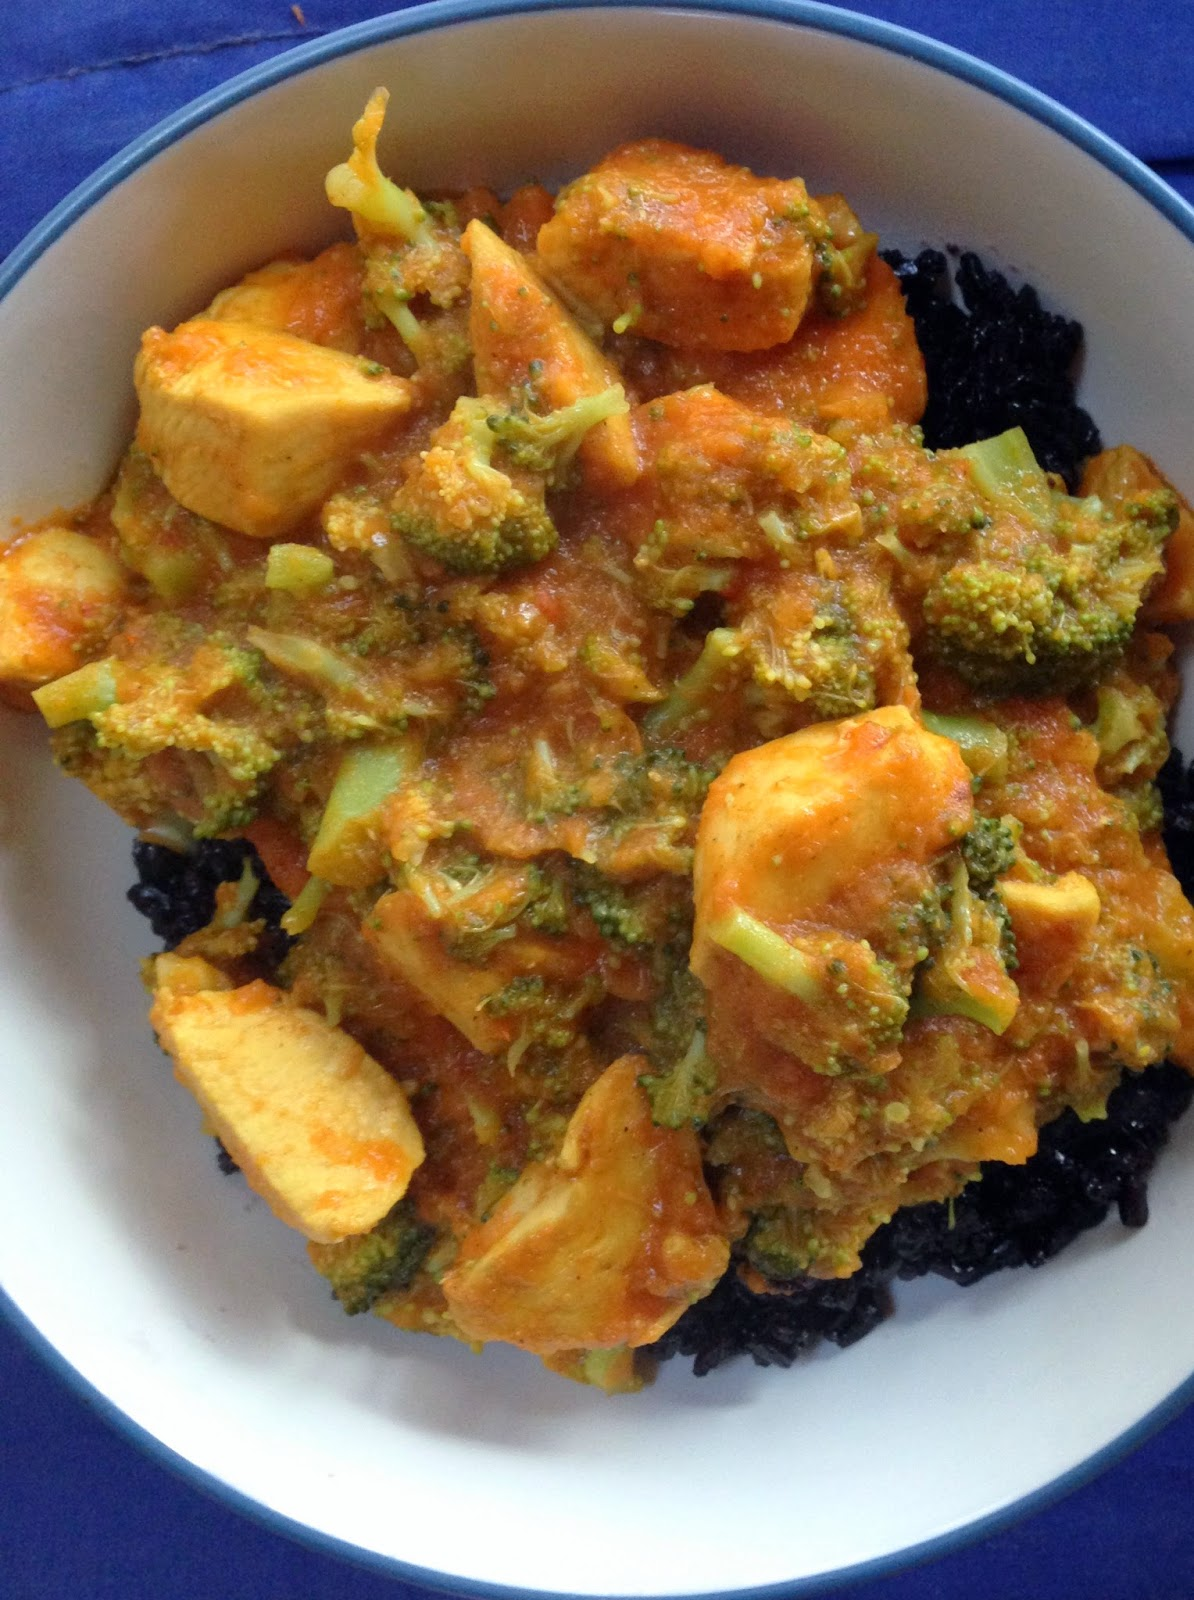 Chicken [or Tempeh] and Broccoli Curry